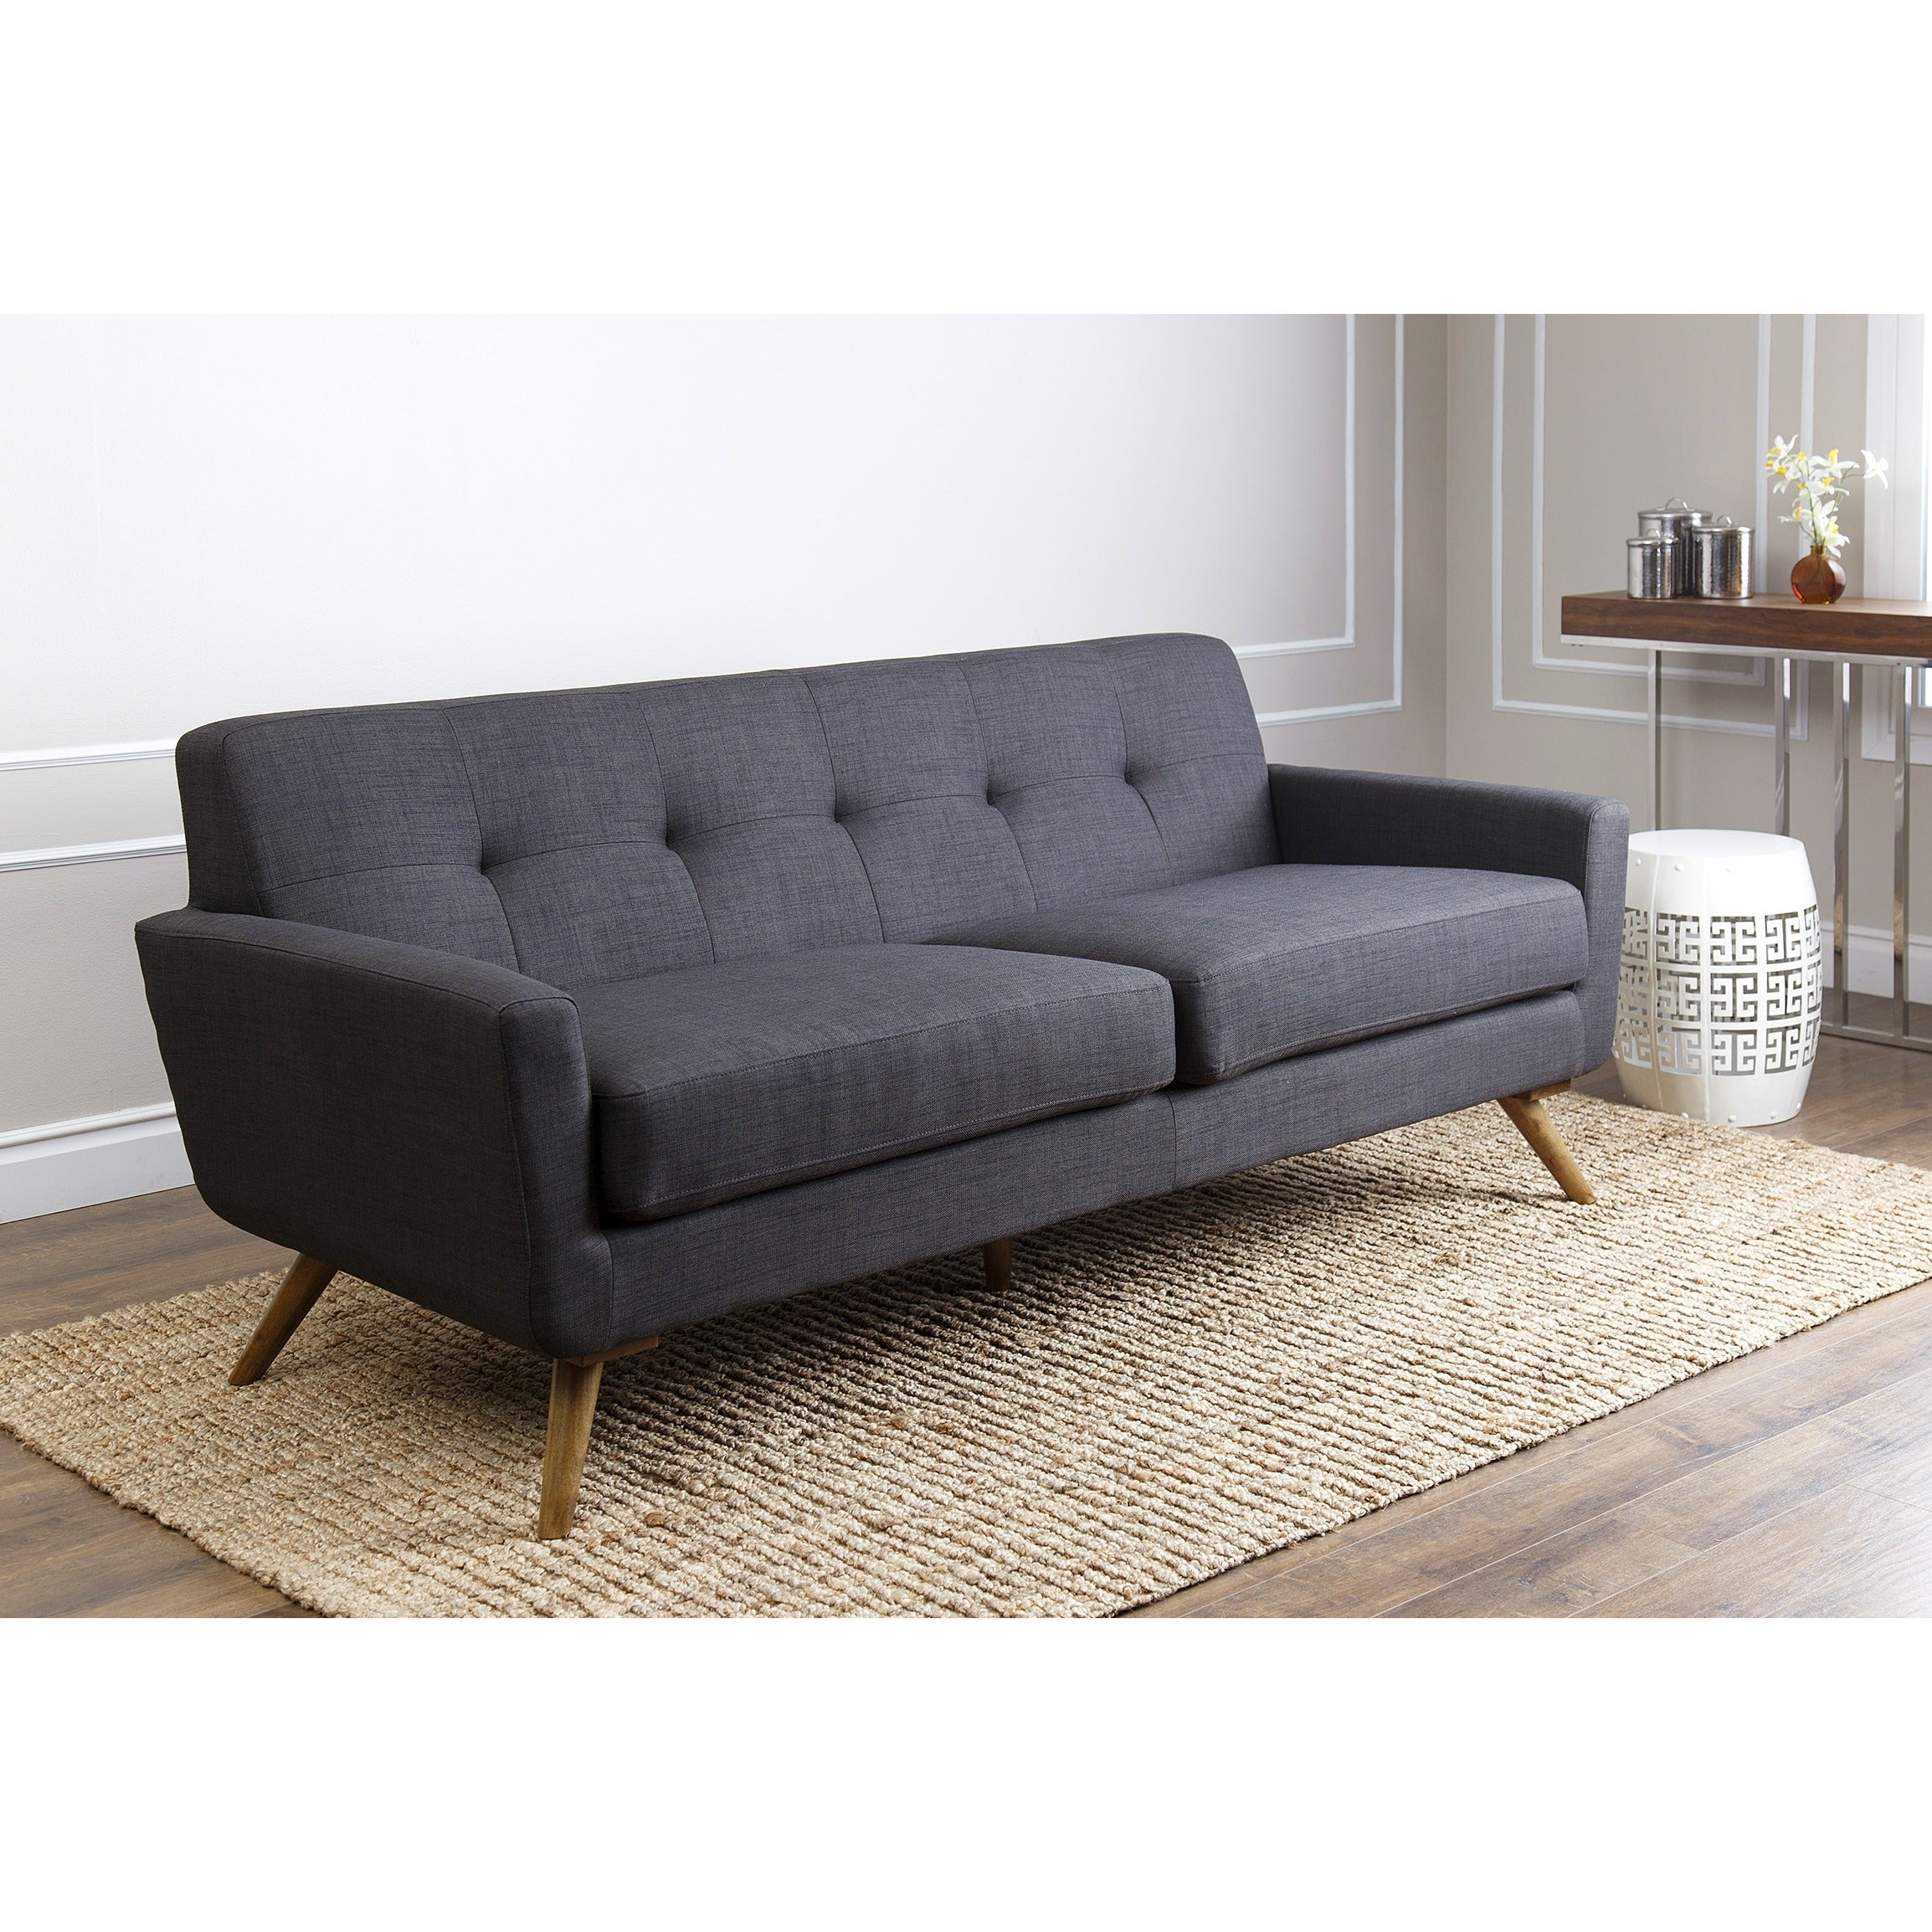 1cheap Abbyson Living Bradley Gray Tufted Fabric Sofa Cheap Living Room Furniture 2015